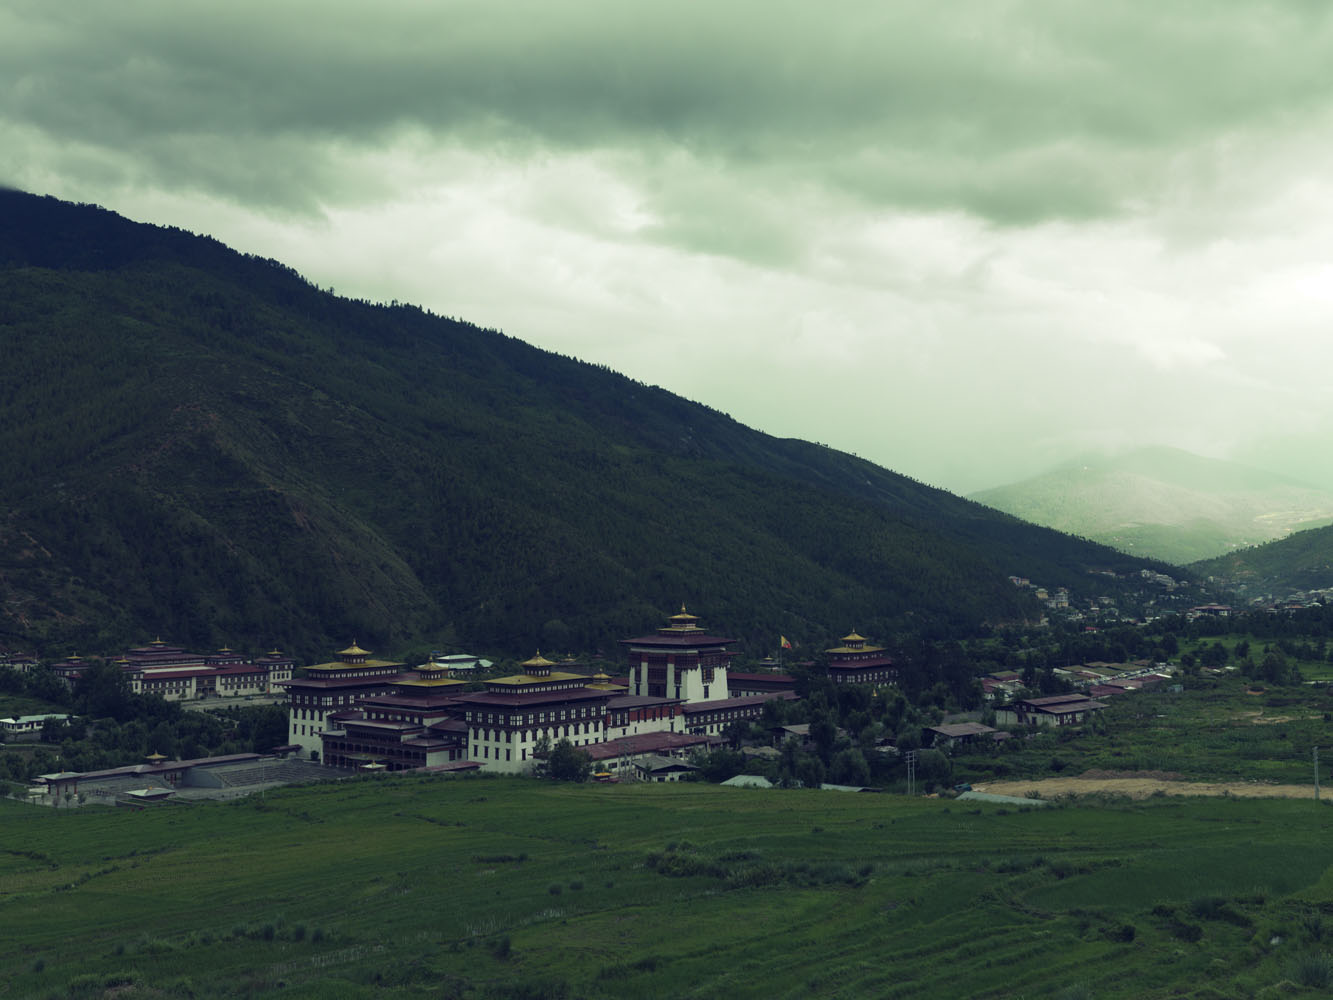 Tashichho Dzong is a Buddhist monastery and fortress on the northern edge of the city of Thimpu. The Dzong is the seat of government and the headquarters of the clergy in the capital.